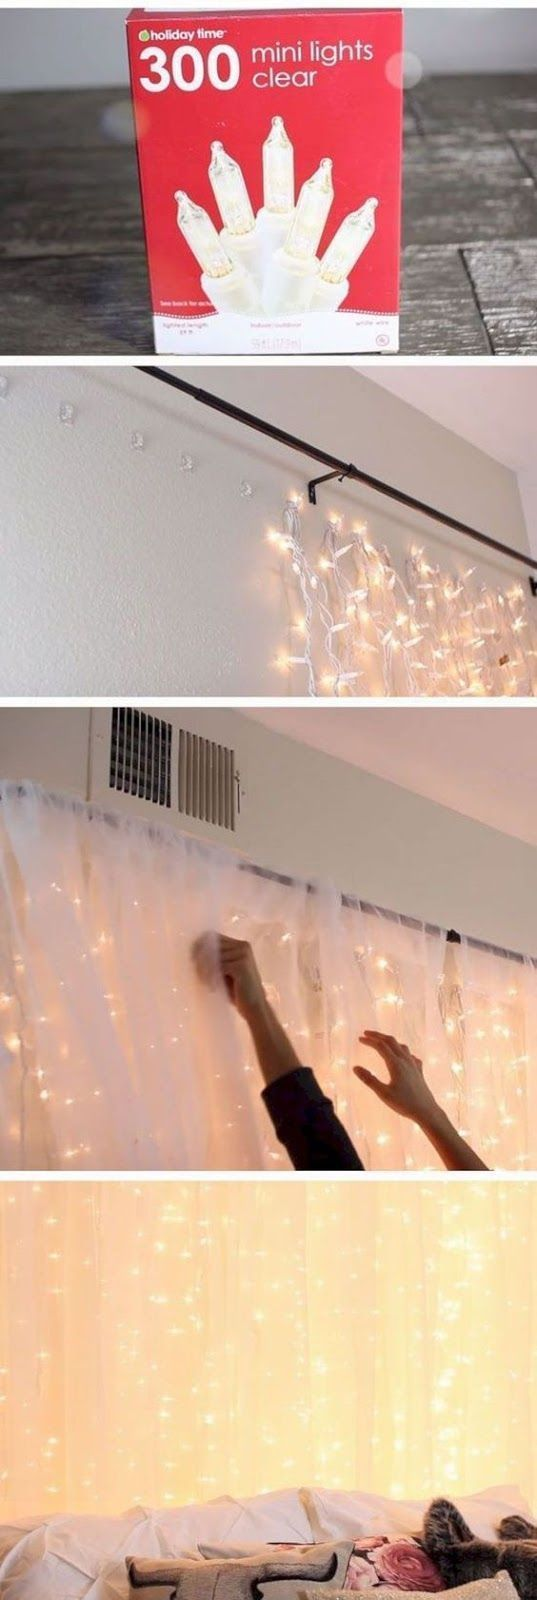 14 DIY Home Decor auf ein Budget Apartment Ideen #firstapartment